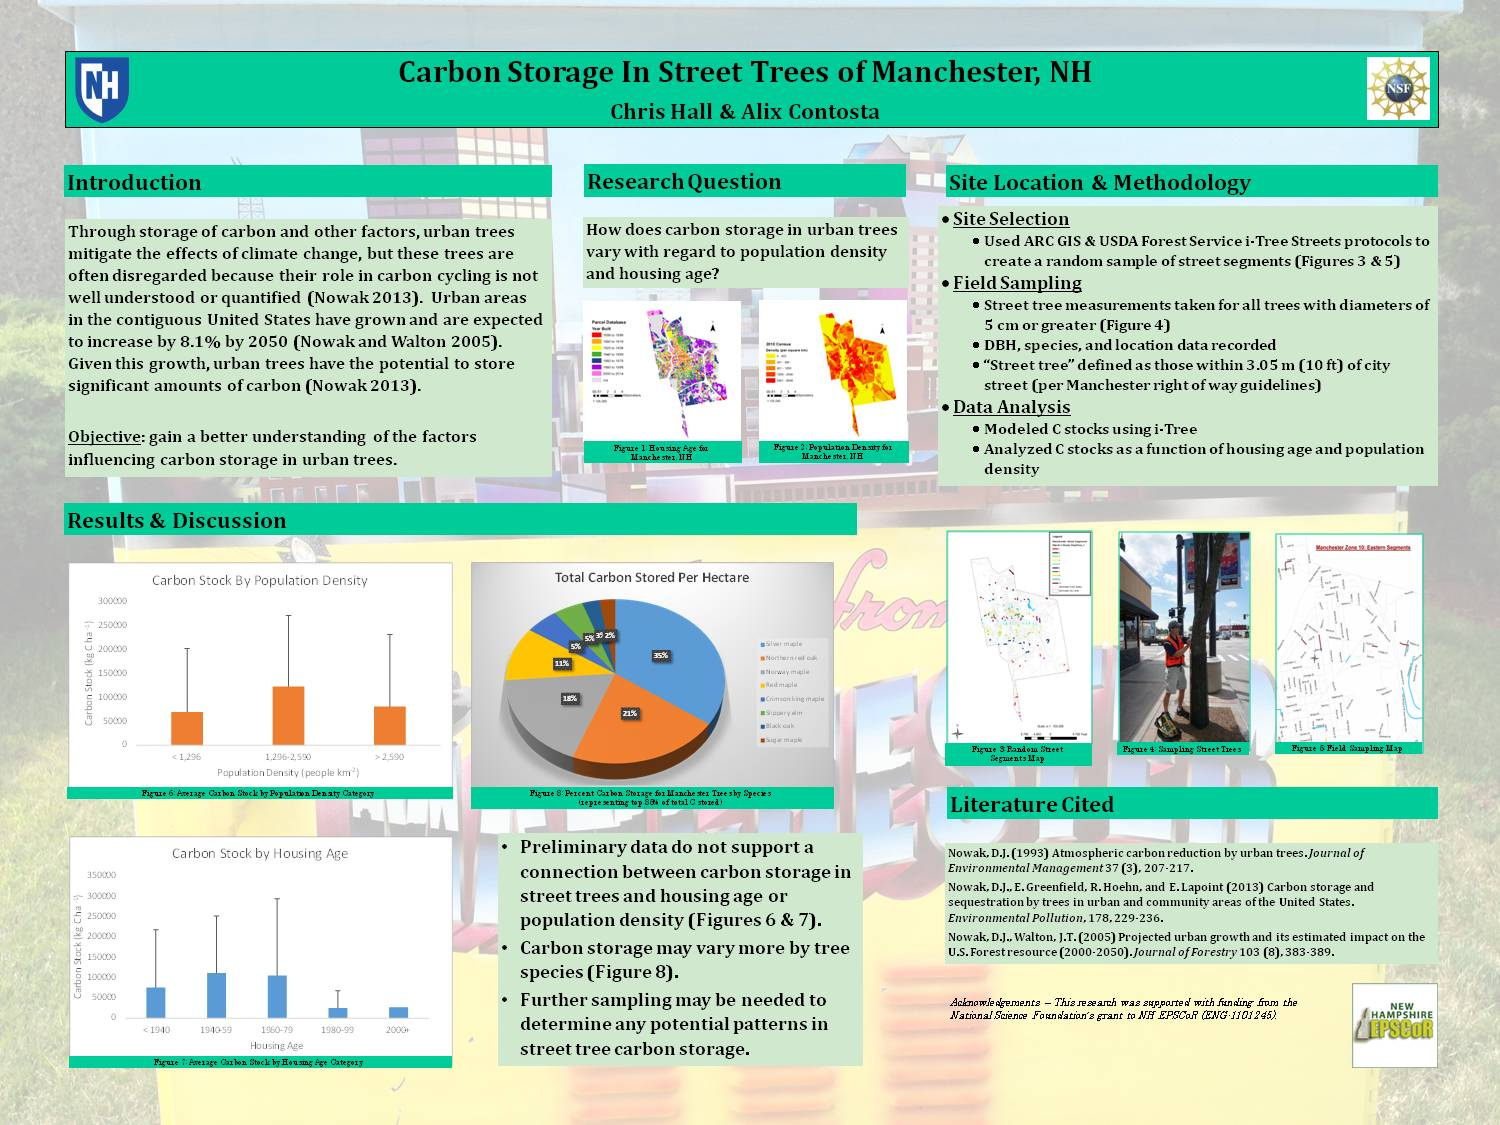 Carbon Storage In Street Trees Of Manchester, Nh by chall